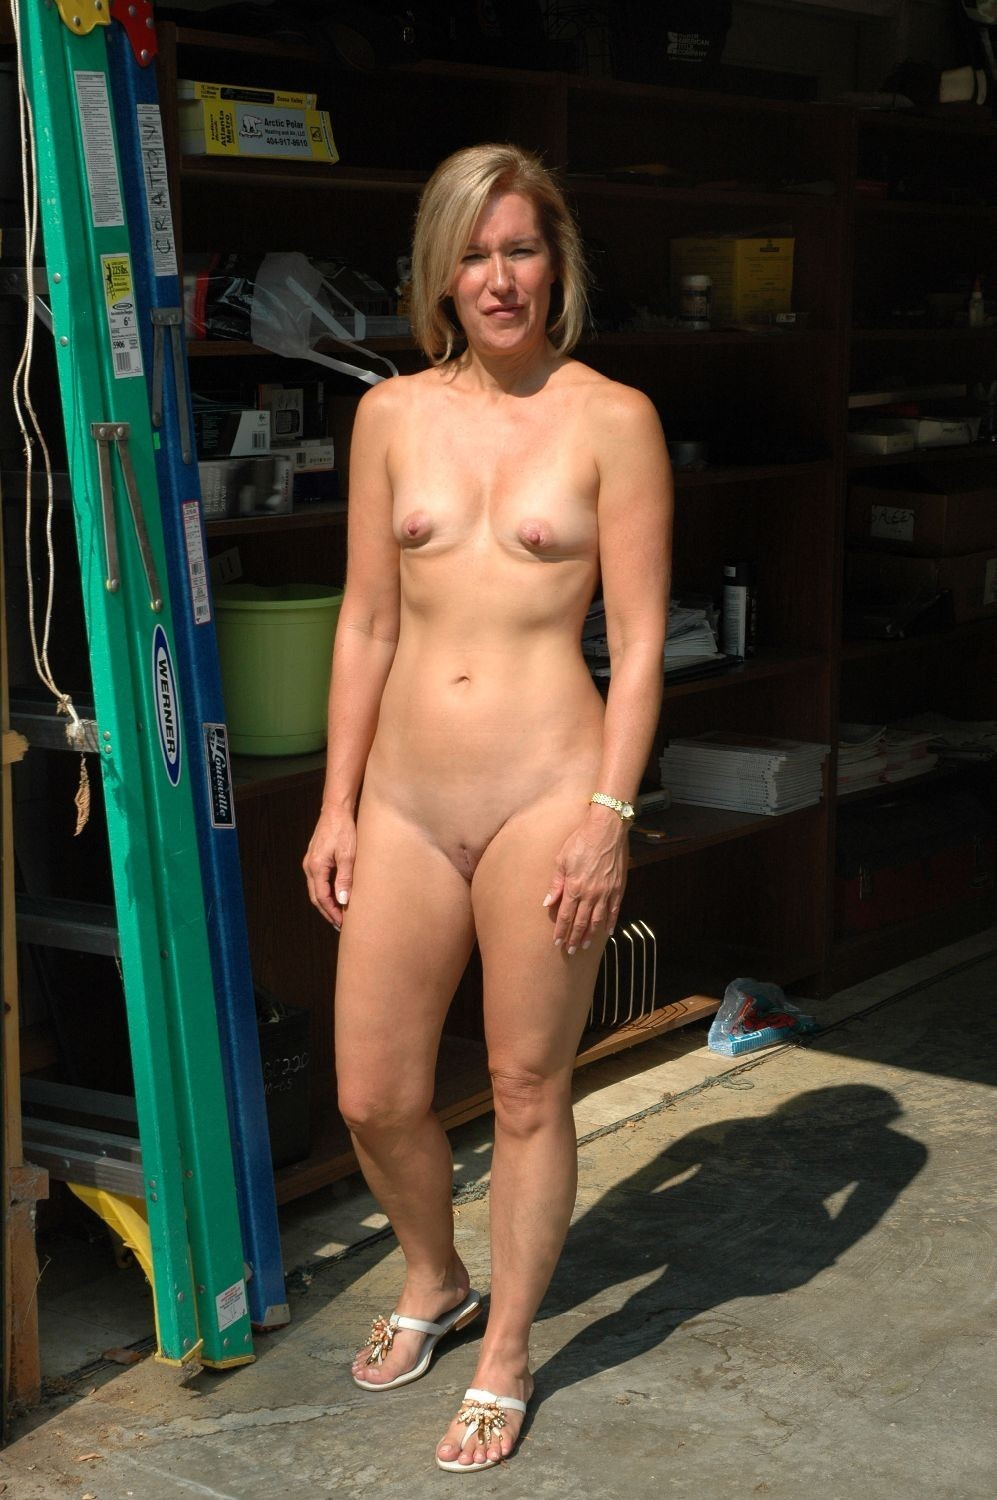 Family open sex public nudist